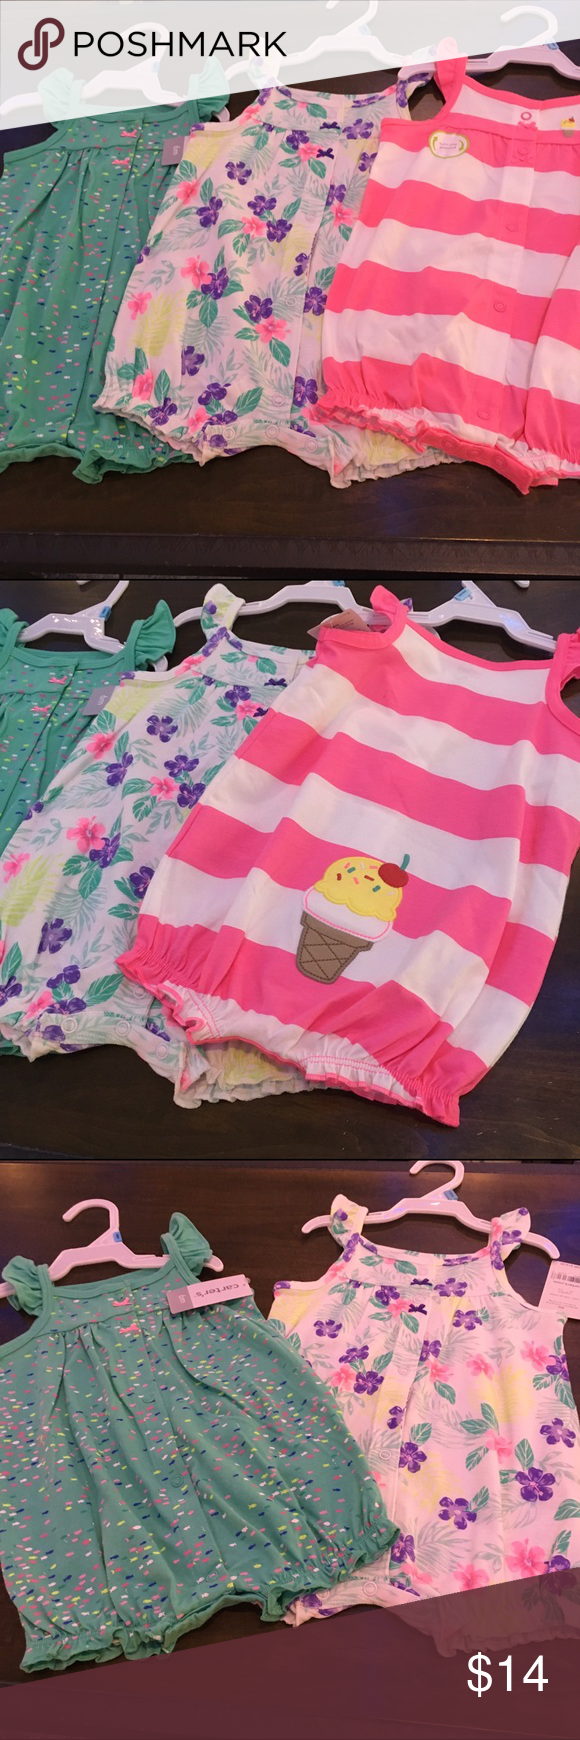 Lot of 3 carters summer rompers 6 months NWT Lot of 3 carters summer rompers 6 months NWT Carters Other